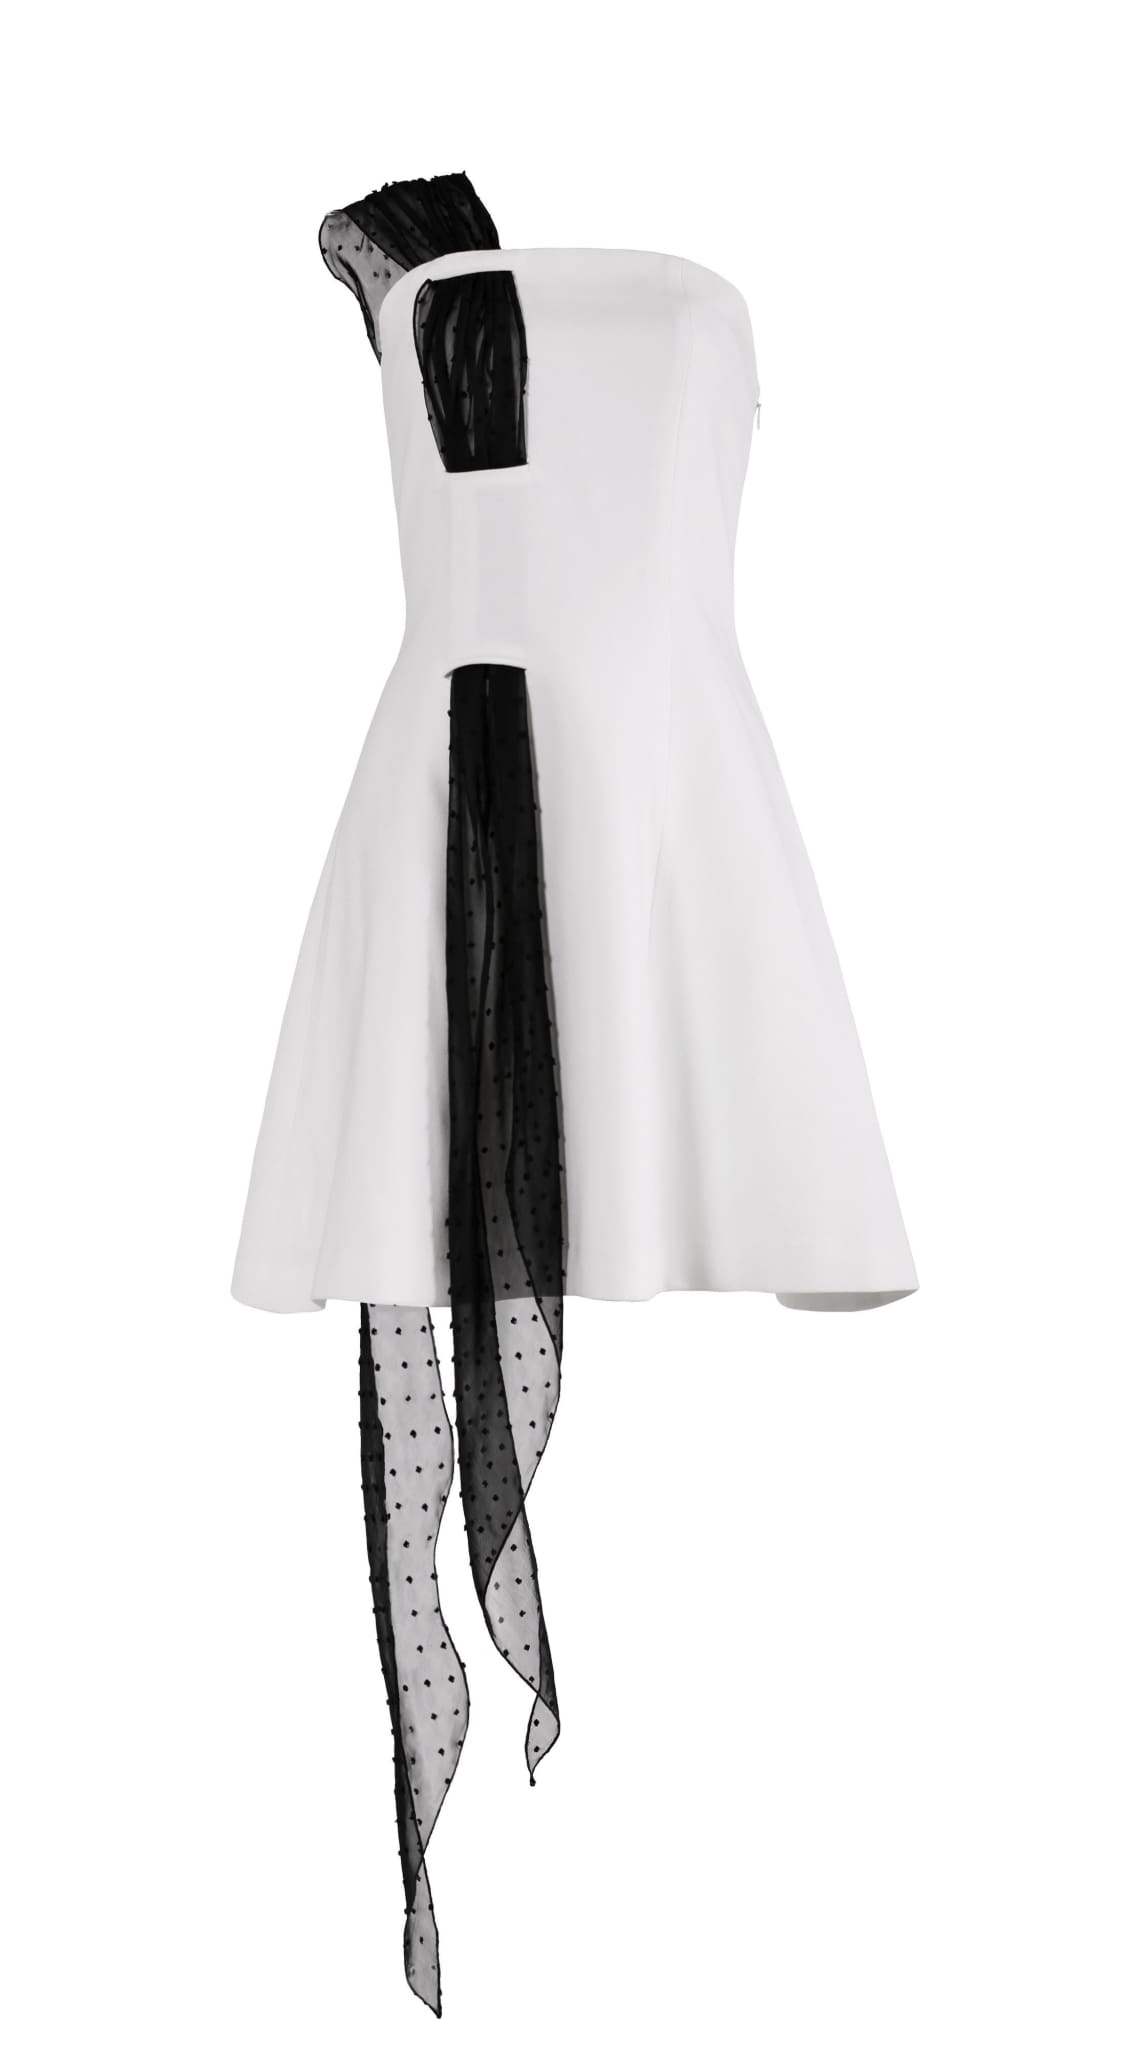 Leda white and black one shoulder dress by San Francisco brand SF Couture sustainable fashion made in the USA | Nineteenth Amendment